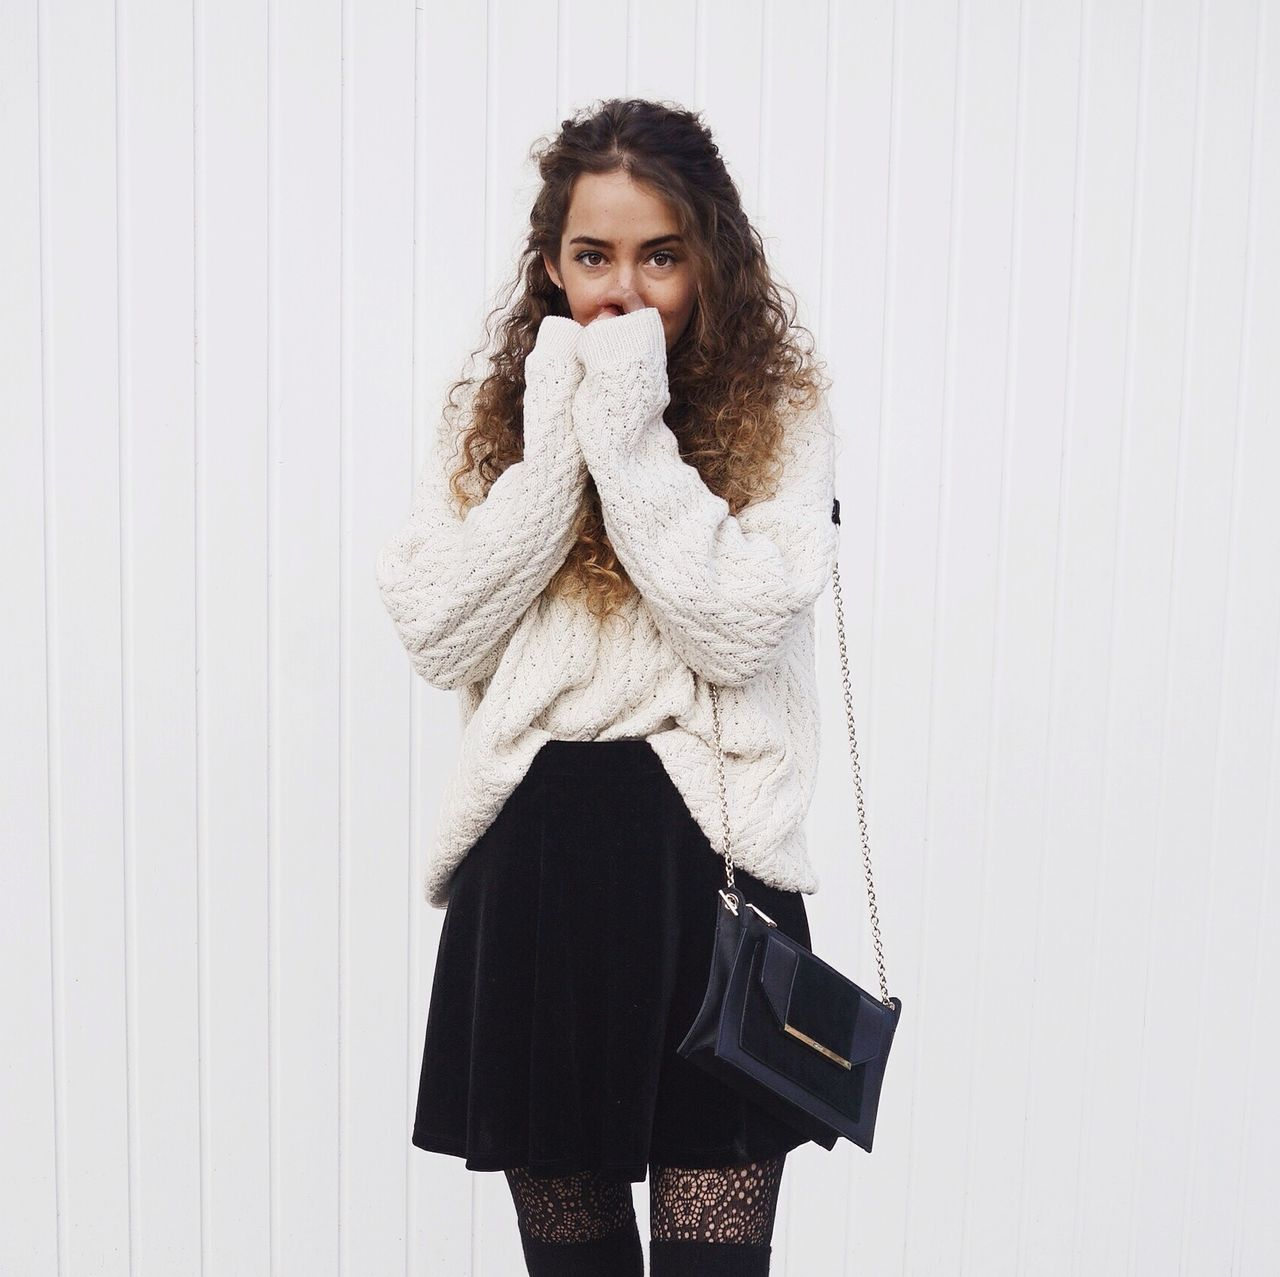 Ootd Curly Hair Smile Hiding Face Looking At Camera Happy Sweater Minimalism Winter